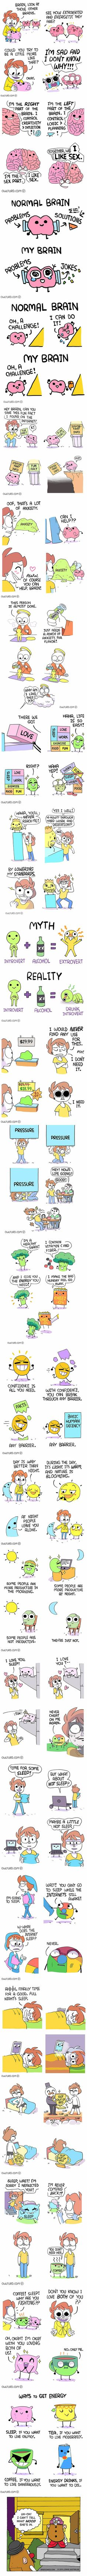 24 hilariously accurate comics about life by Owlturd http://9gag.com/gag/aXqod5V?ref=fbp